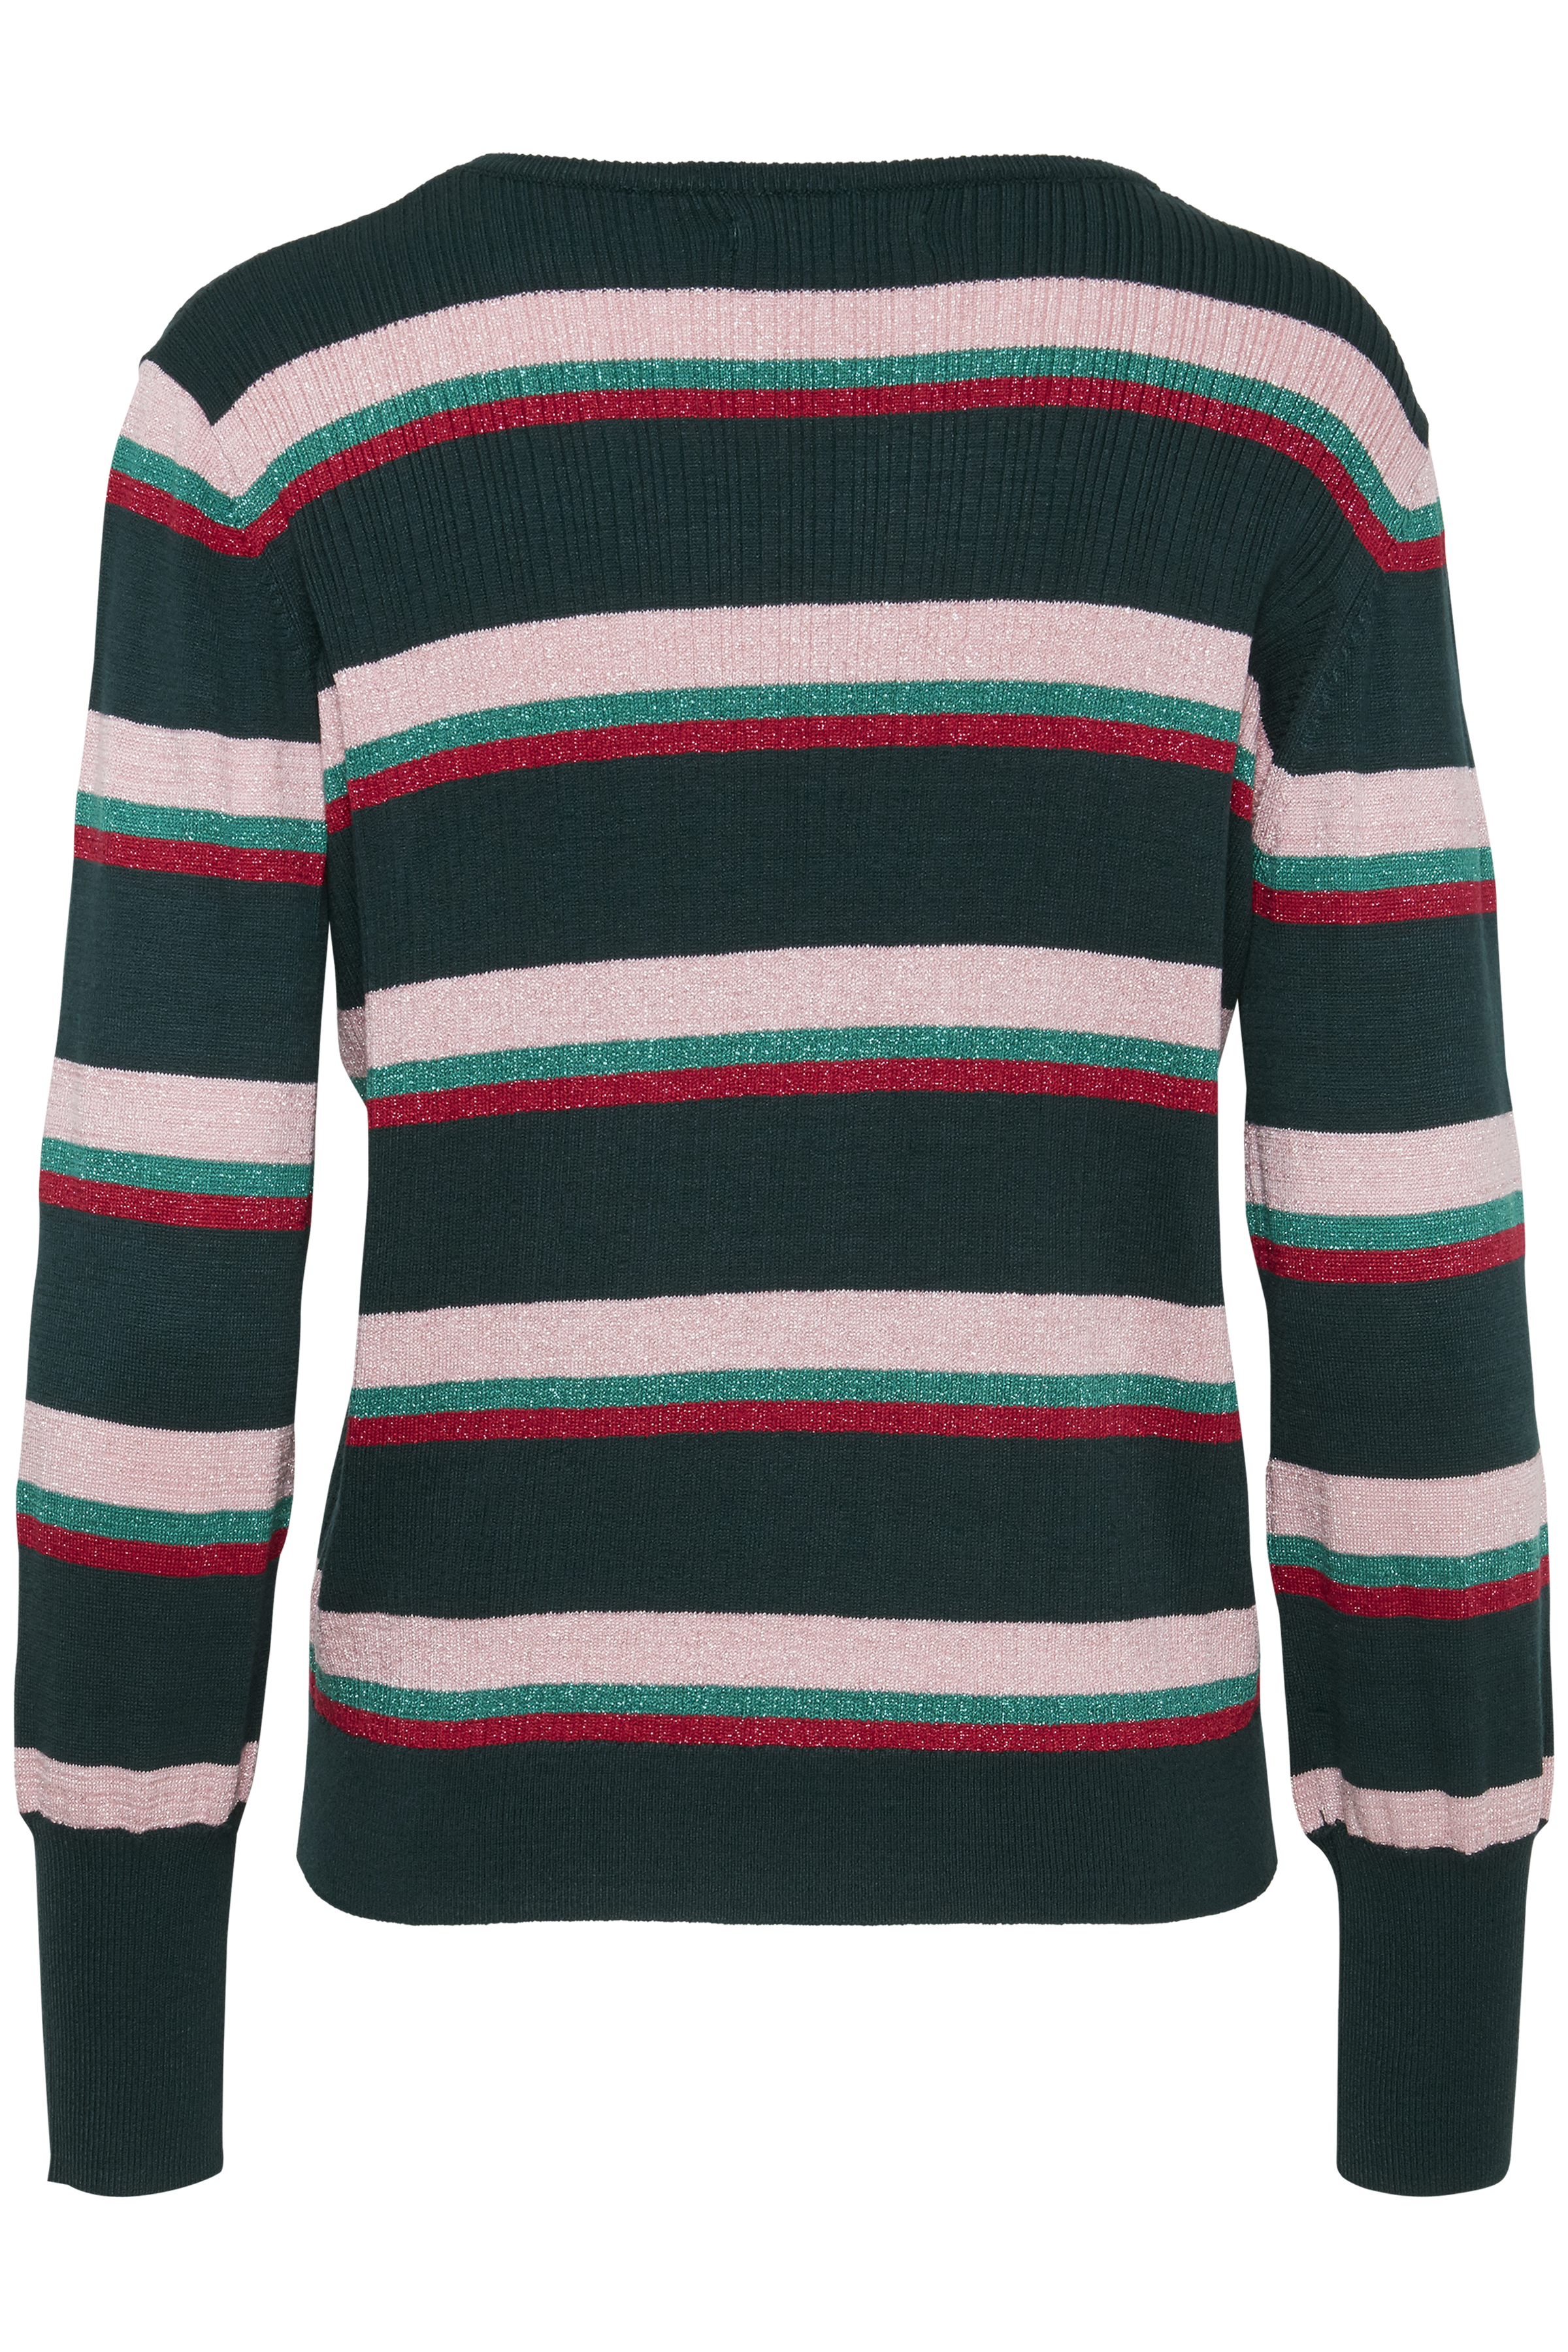 Majestic Green Combi Strikpullover fra b.young – Køb Majestic Green Combi Strikpullover fra str. XS-XXL her